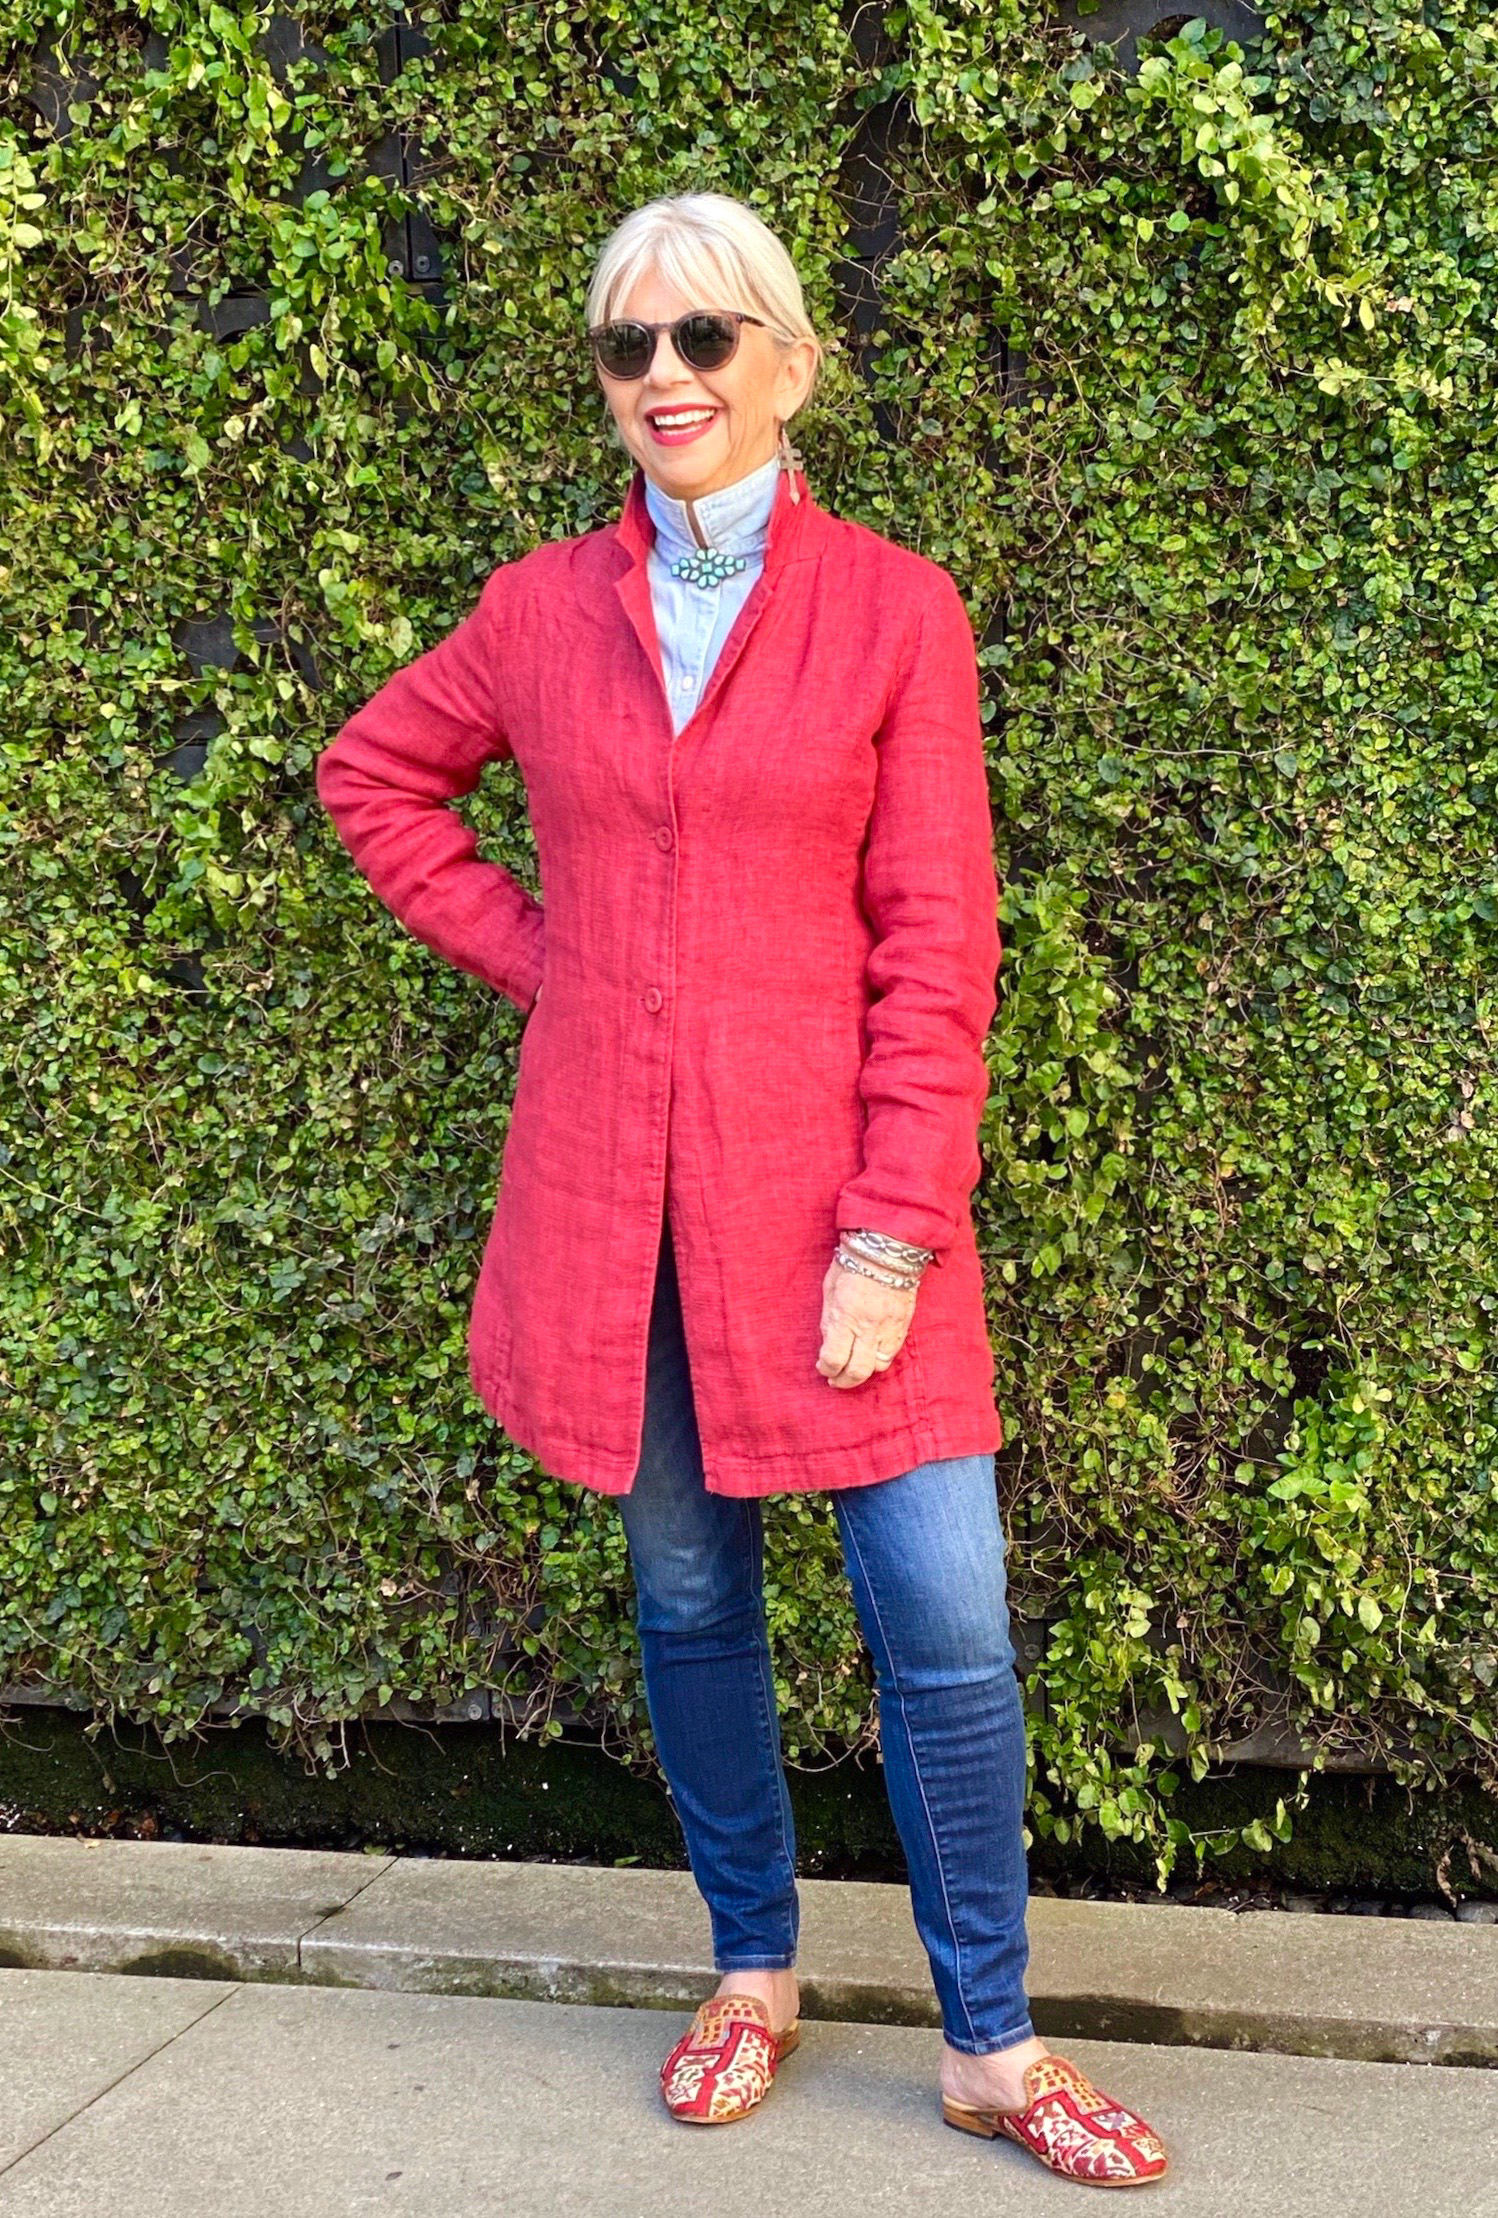 cindy hattersley in eileen fisher organic linen jacket and artemis slippers